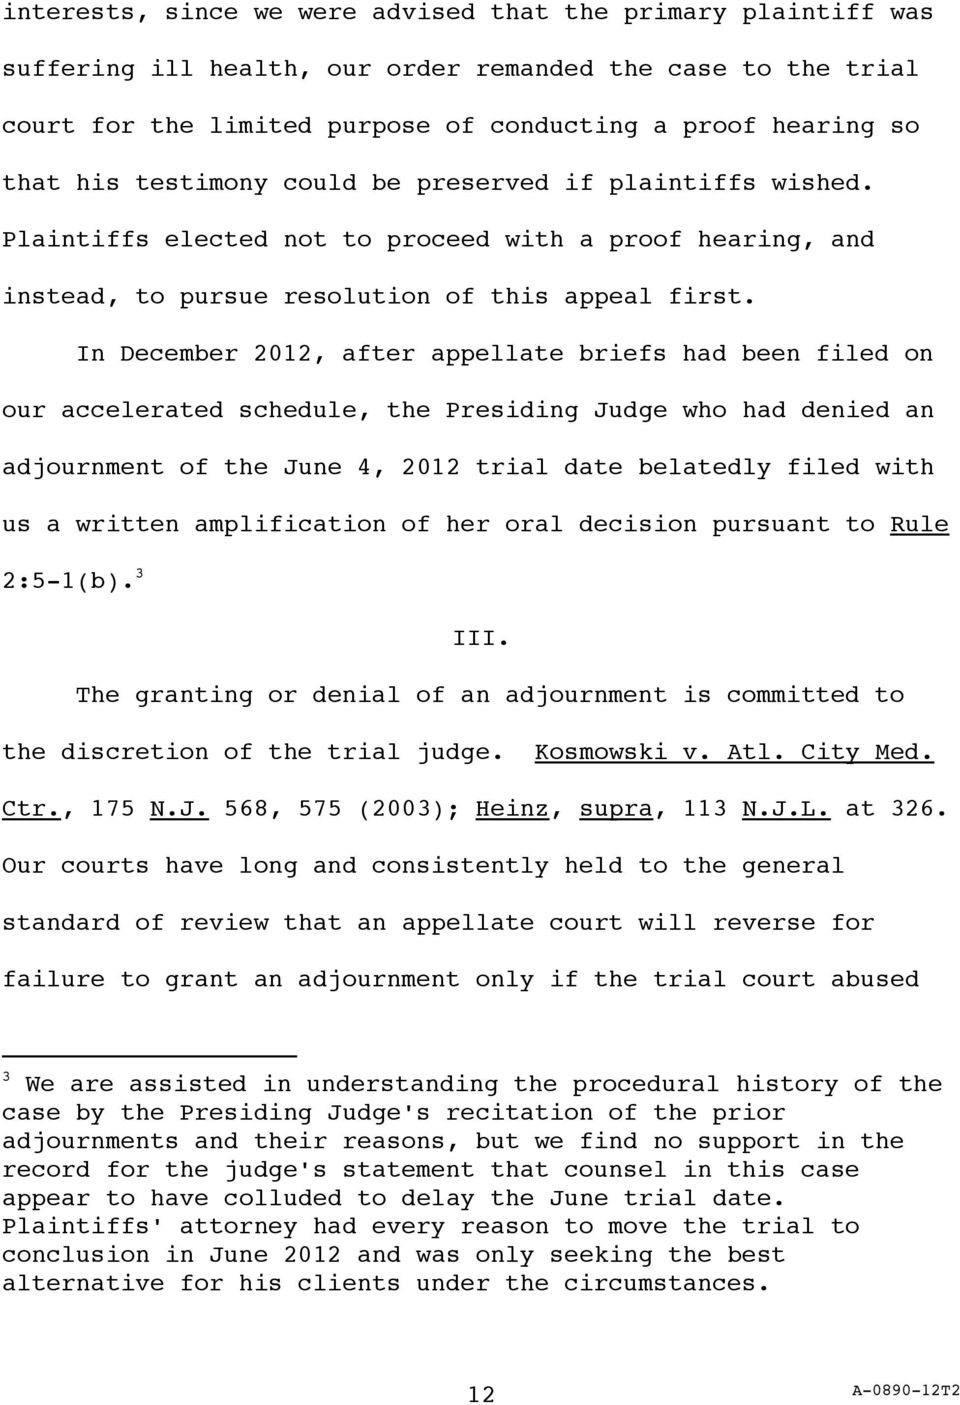 In December 2012, after appellate briefs had been filed on our accelerated schedule, the Presiding Judge who had denied an adjournment of the June 4, 2012 trial date belatedly filed with us a written